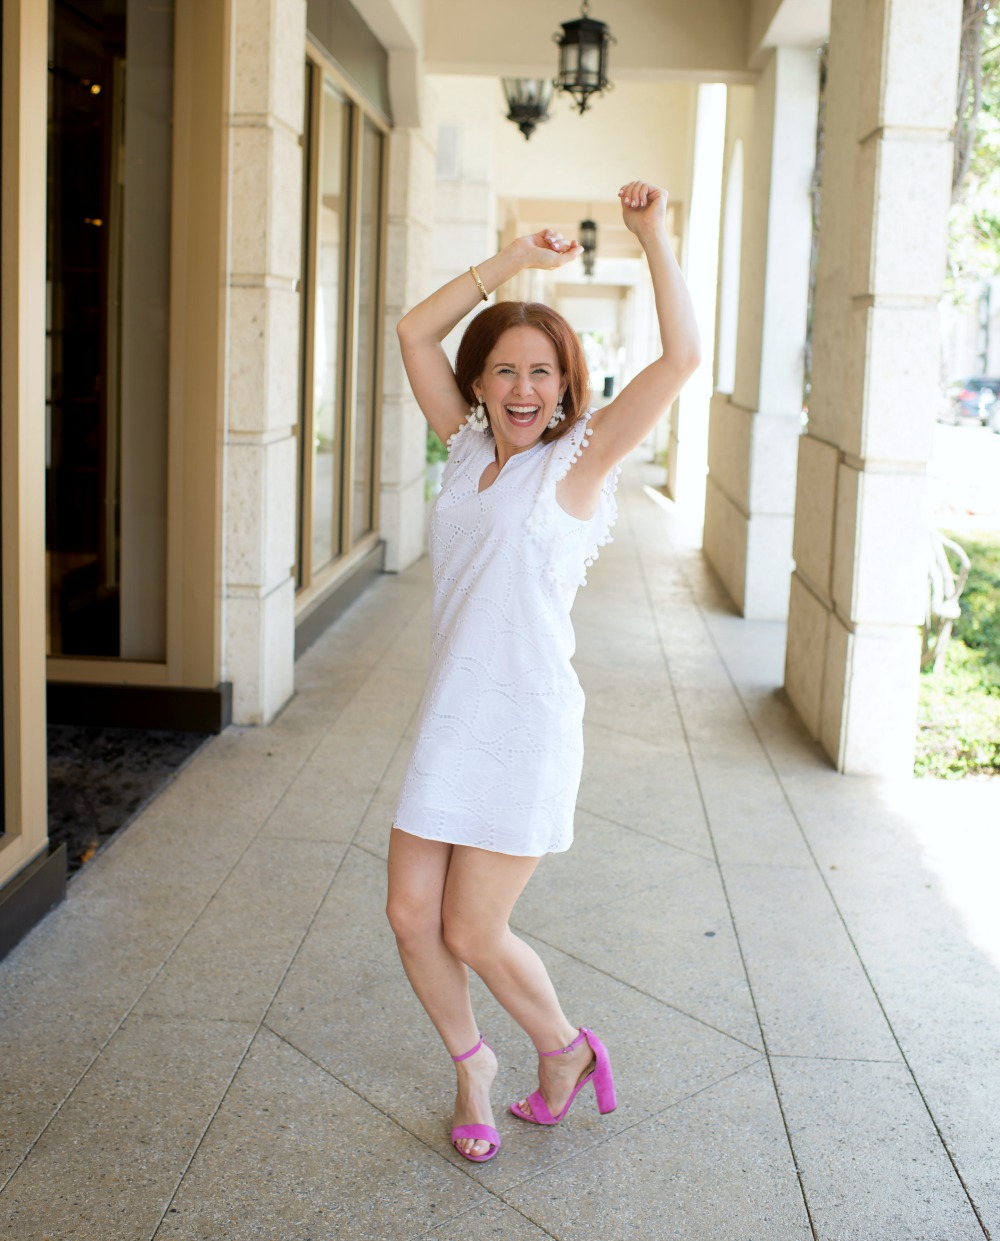 White dress with pink heels - The Little White Dress featured by popular Florida style blogger, The Modern Savvy